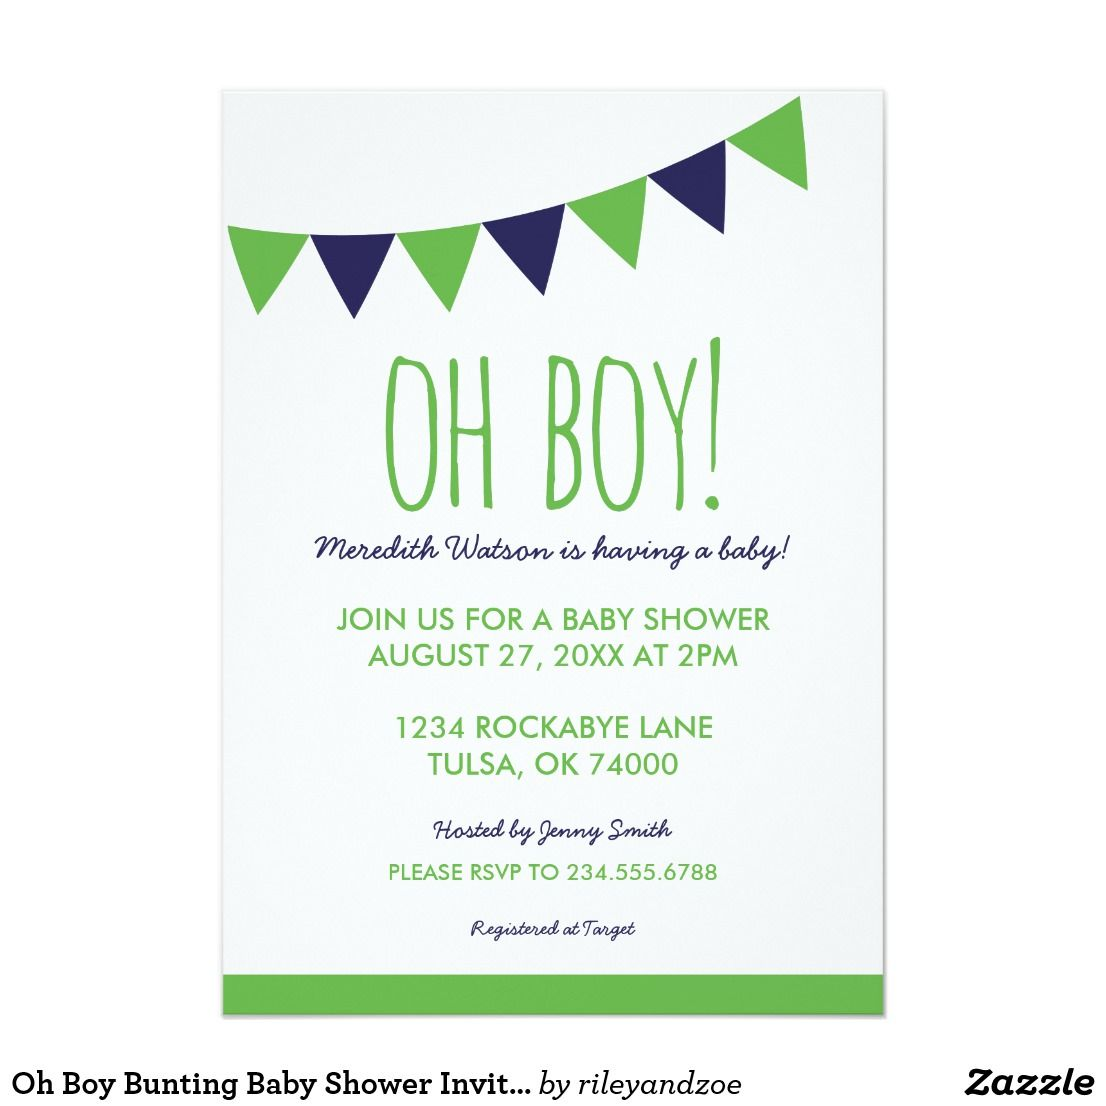 Oh Boy Bunting Baby Shower Invitation | Boy baby showers and Shower ...